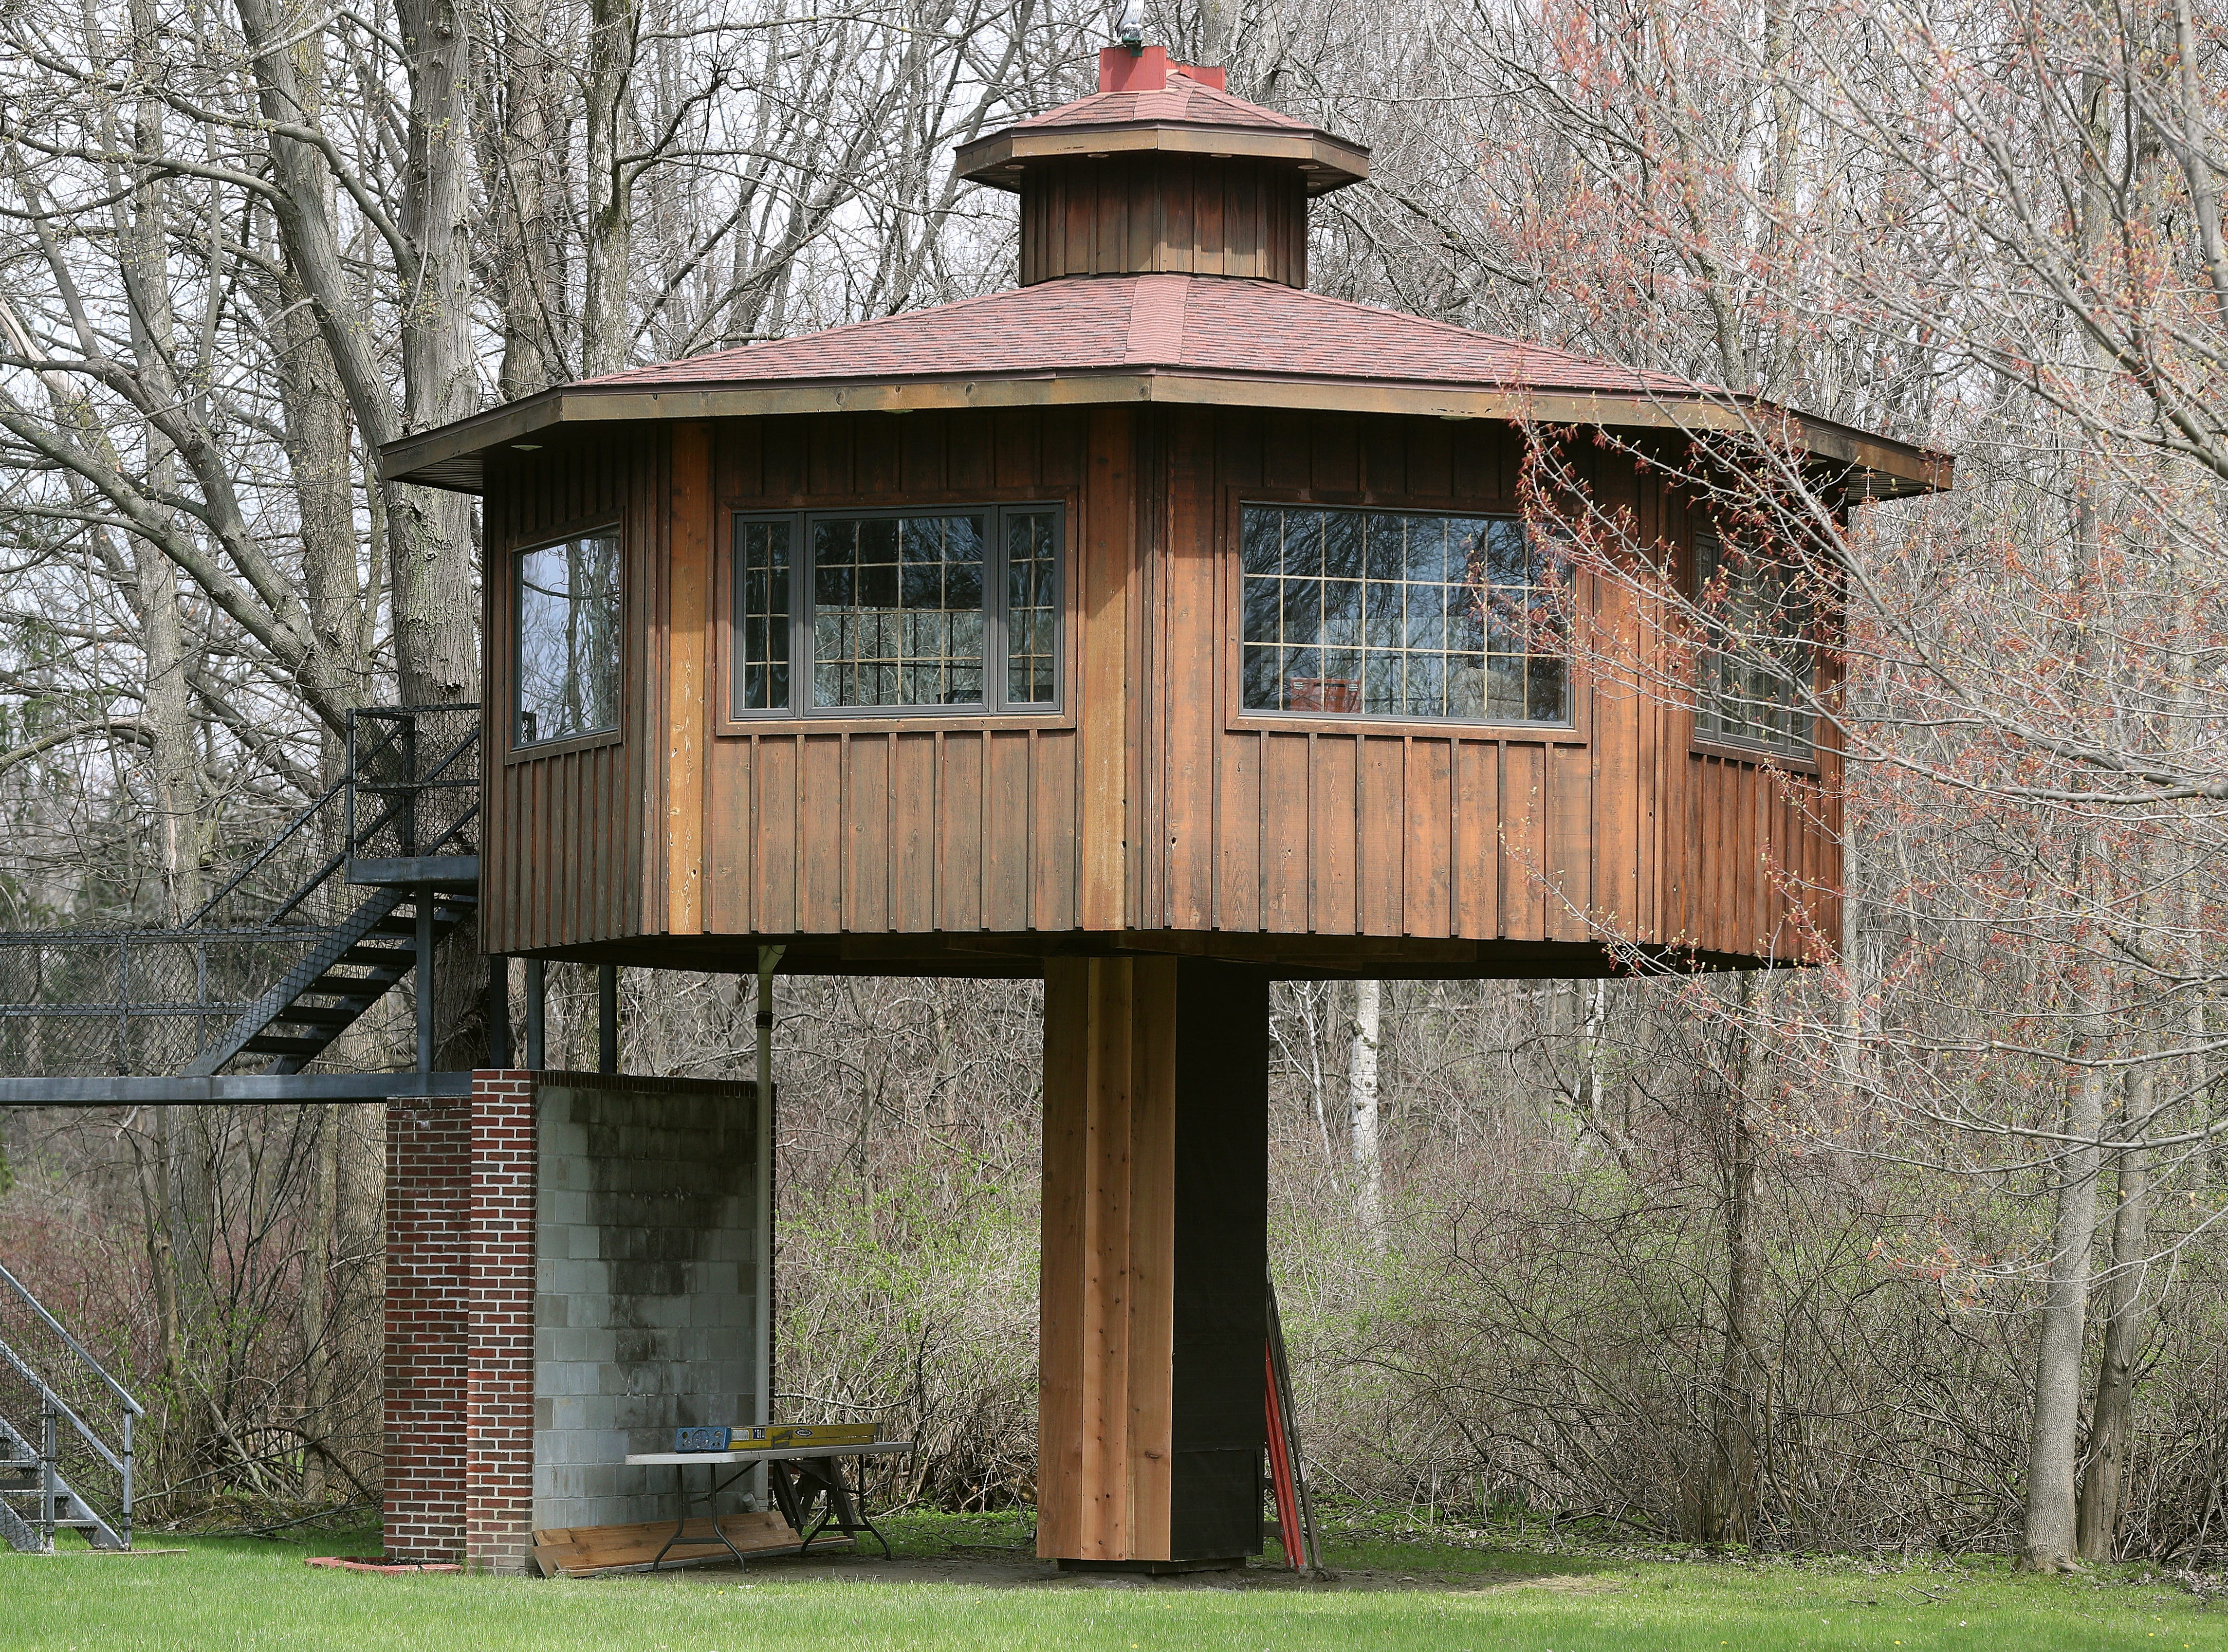 An elevated gazebo-style building sometimes referred to as a treehouse.